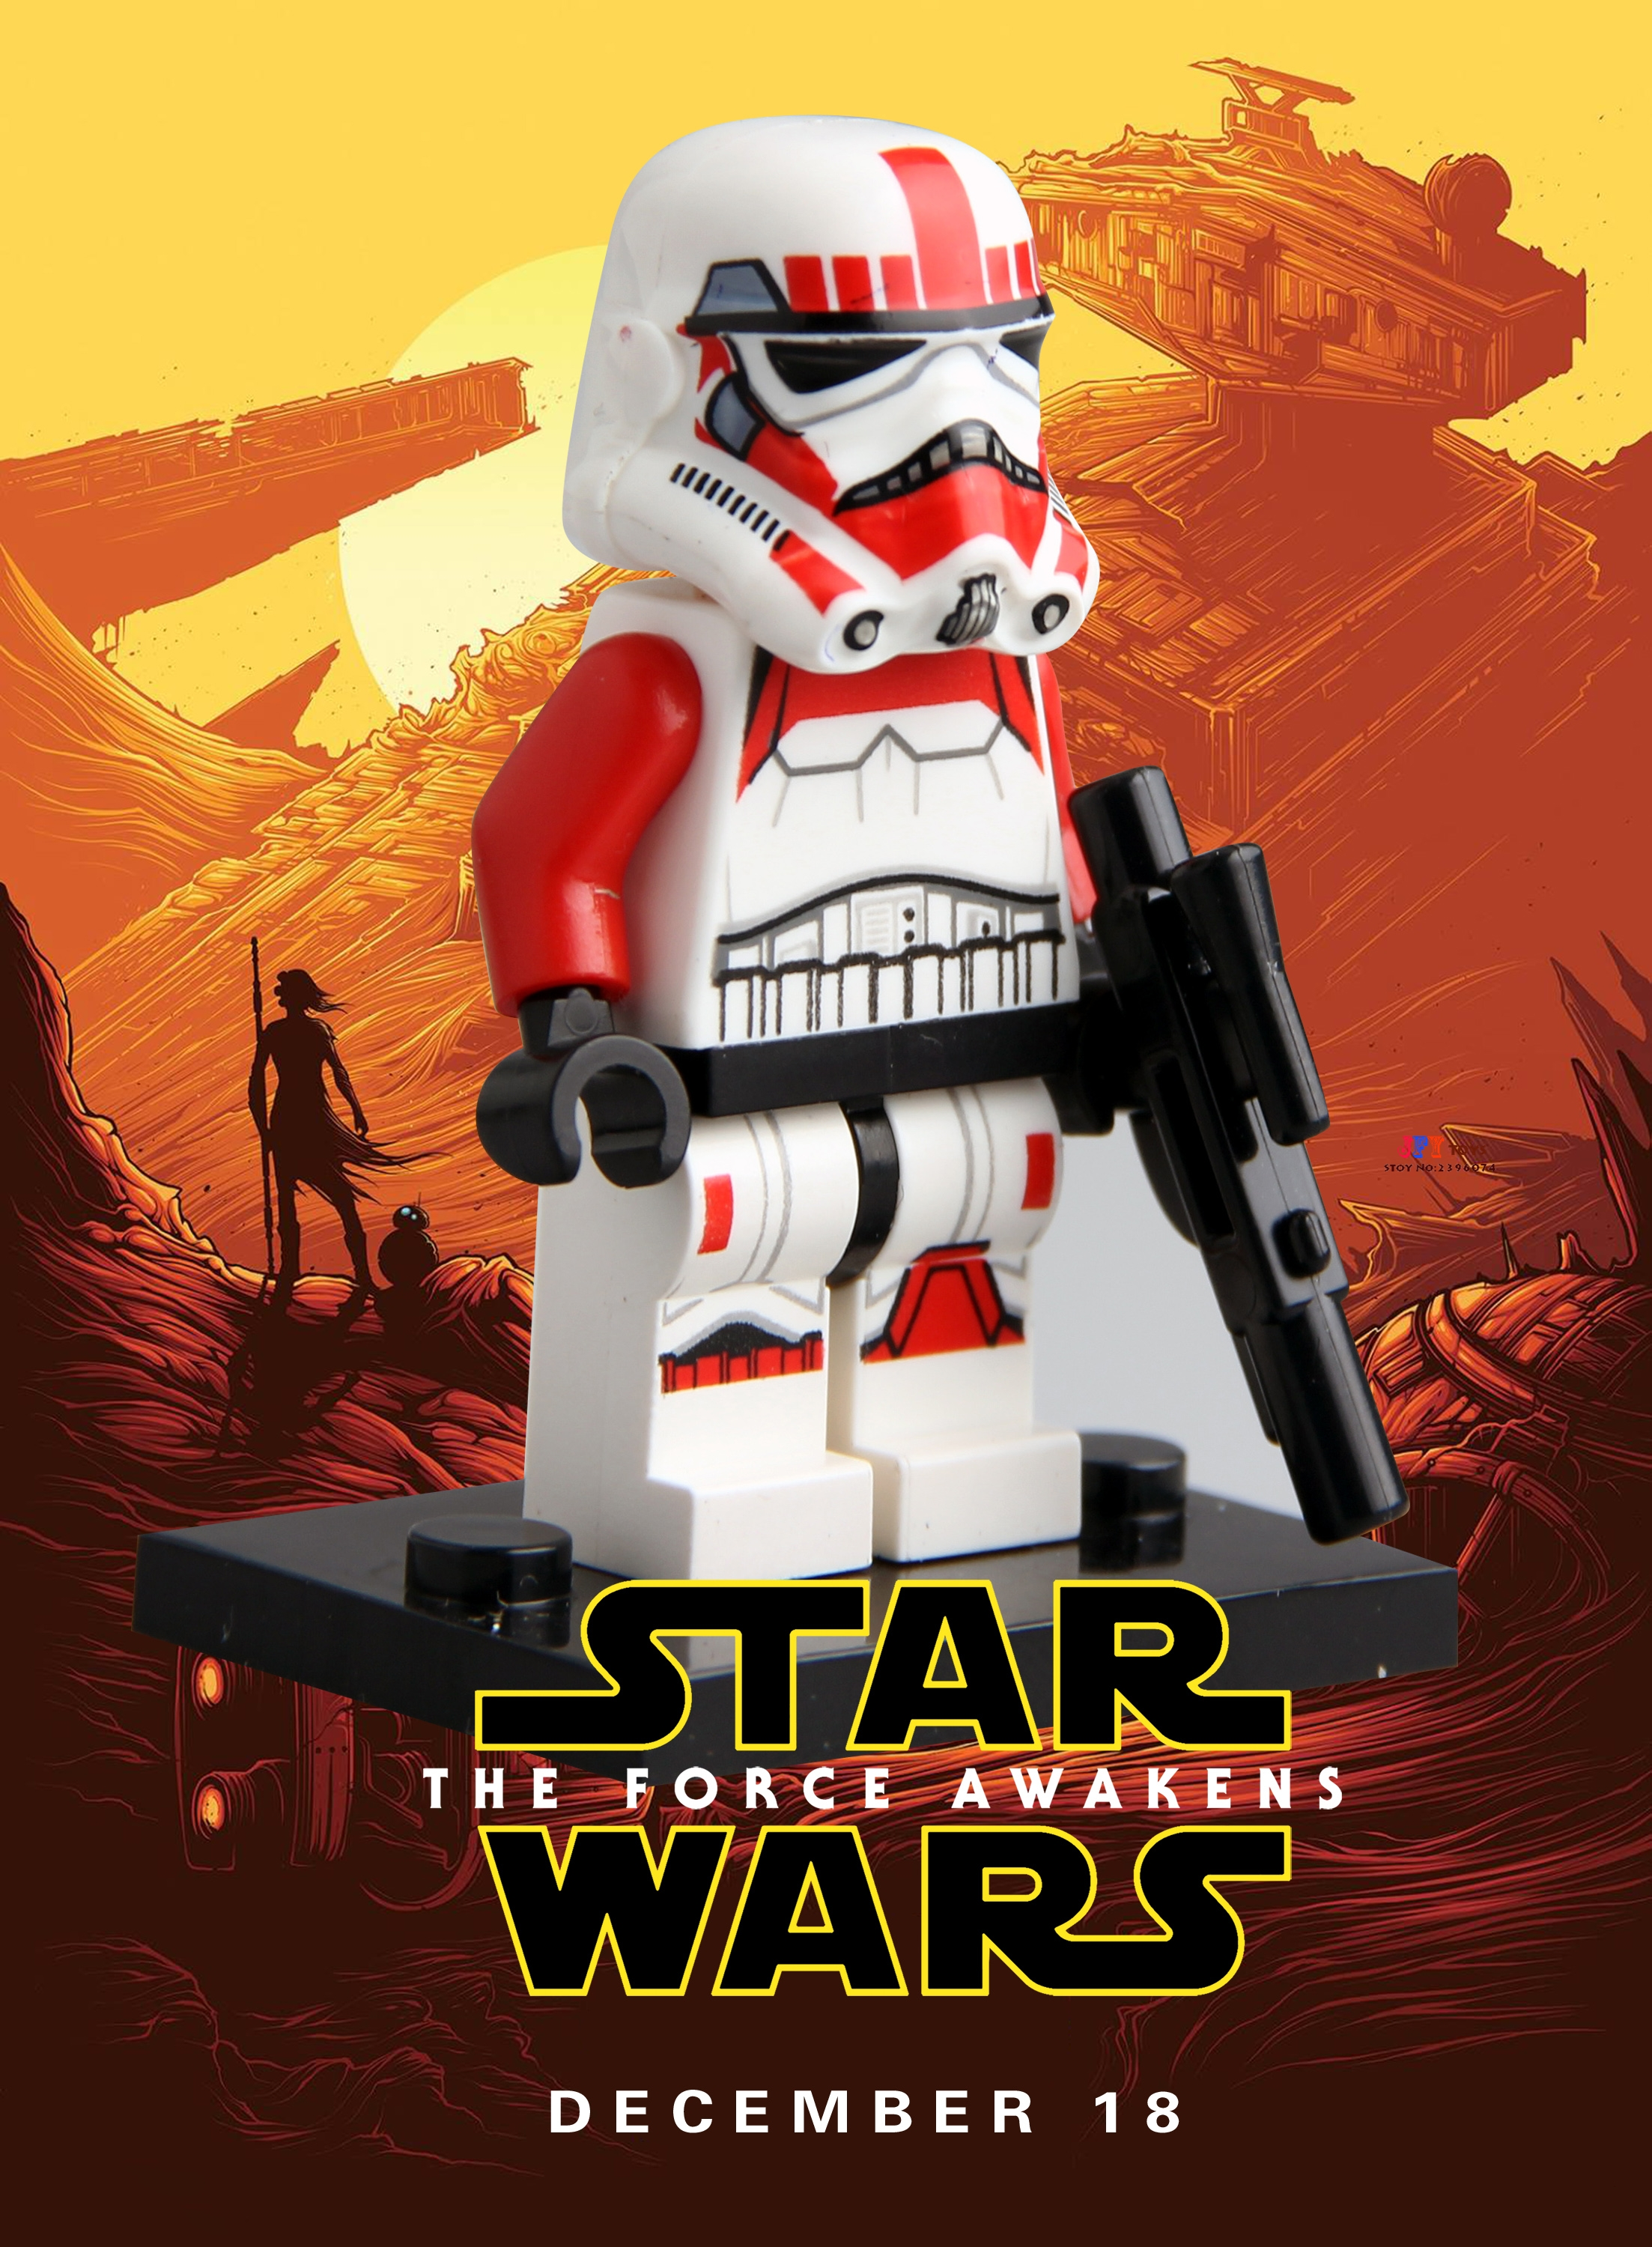 Single Sale star wars superhero Clone Shock Trooper SW692 building blocks model bricks toys for children brinquedos menino single sale star wars superhero decool green lantern building blocks model bricks toys for children brinquedos menino